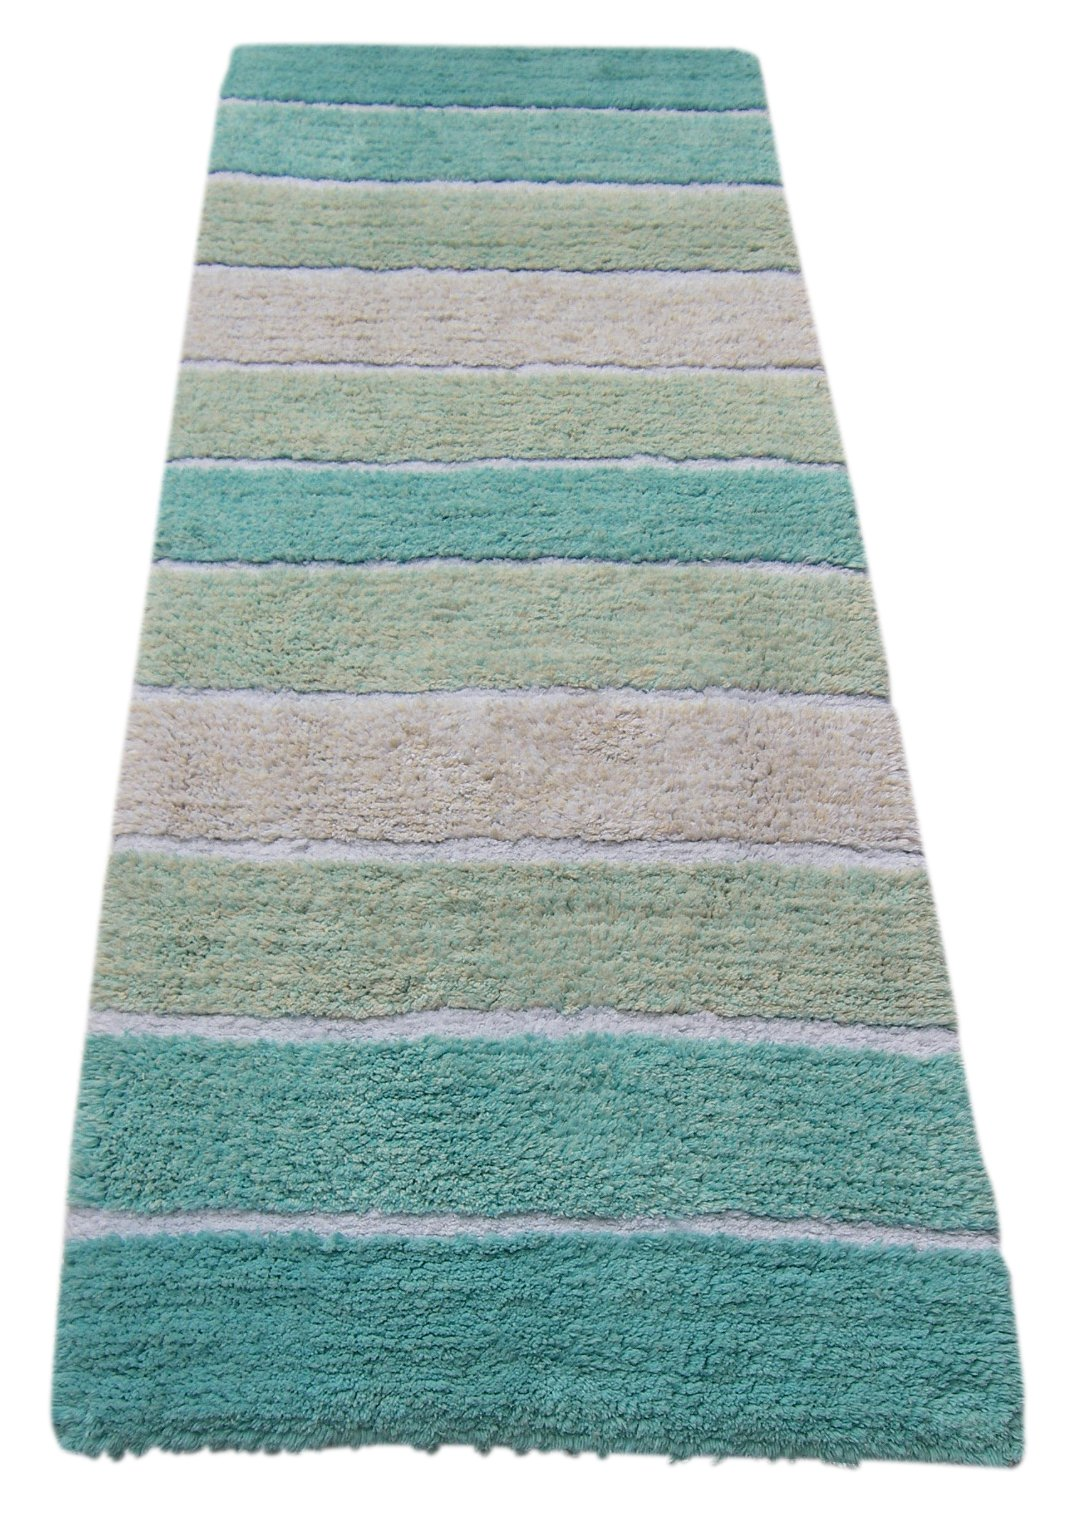 "Chardin home Cordural Stripe Bath Runner, Turquoise with Latex Spray Non-Skid Backing, 24"" W x 60'' L - Large oblong 24 inch x 60 inch plush & soft bath rug to decorate your bathroom Plush & super absorbent cotton pile for long lasting life Superior high quality 100% pure cotton bath rug with anti-skid spray latex back - bathroom-linens, bathroom, bath-mats - 81w4hr0%2Bz3L -"